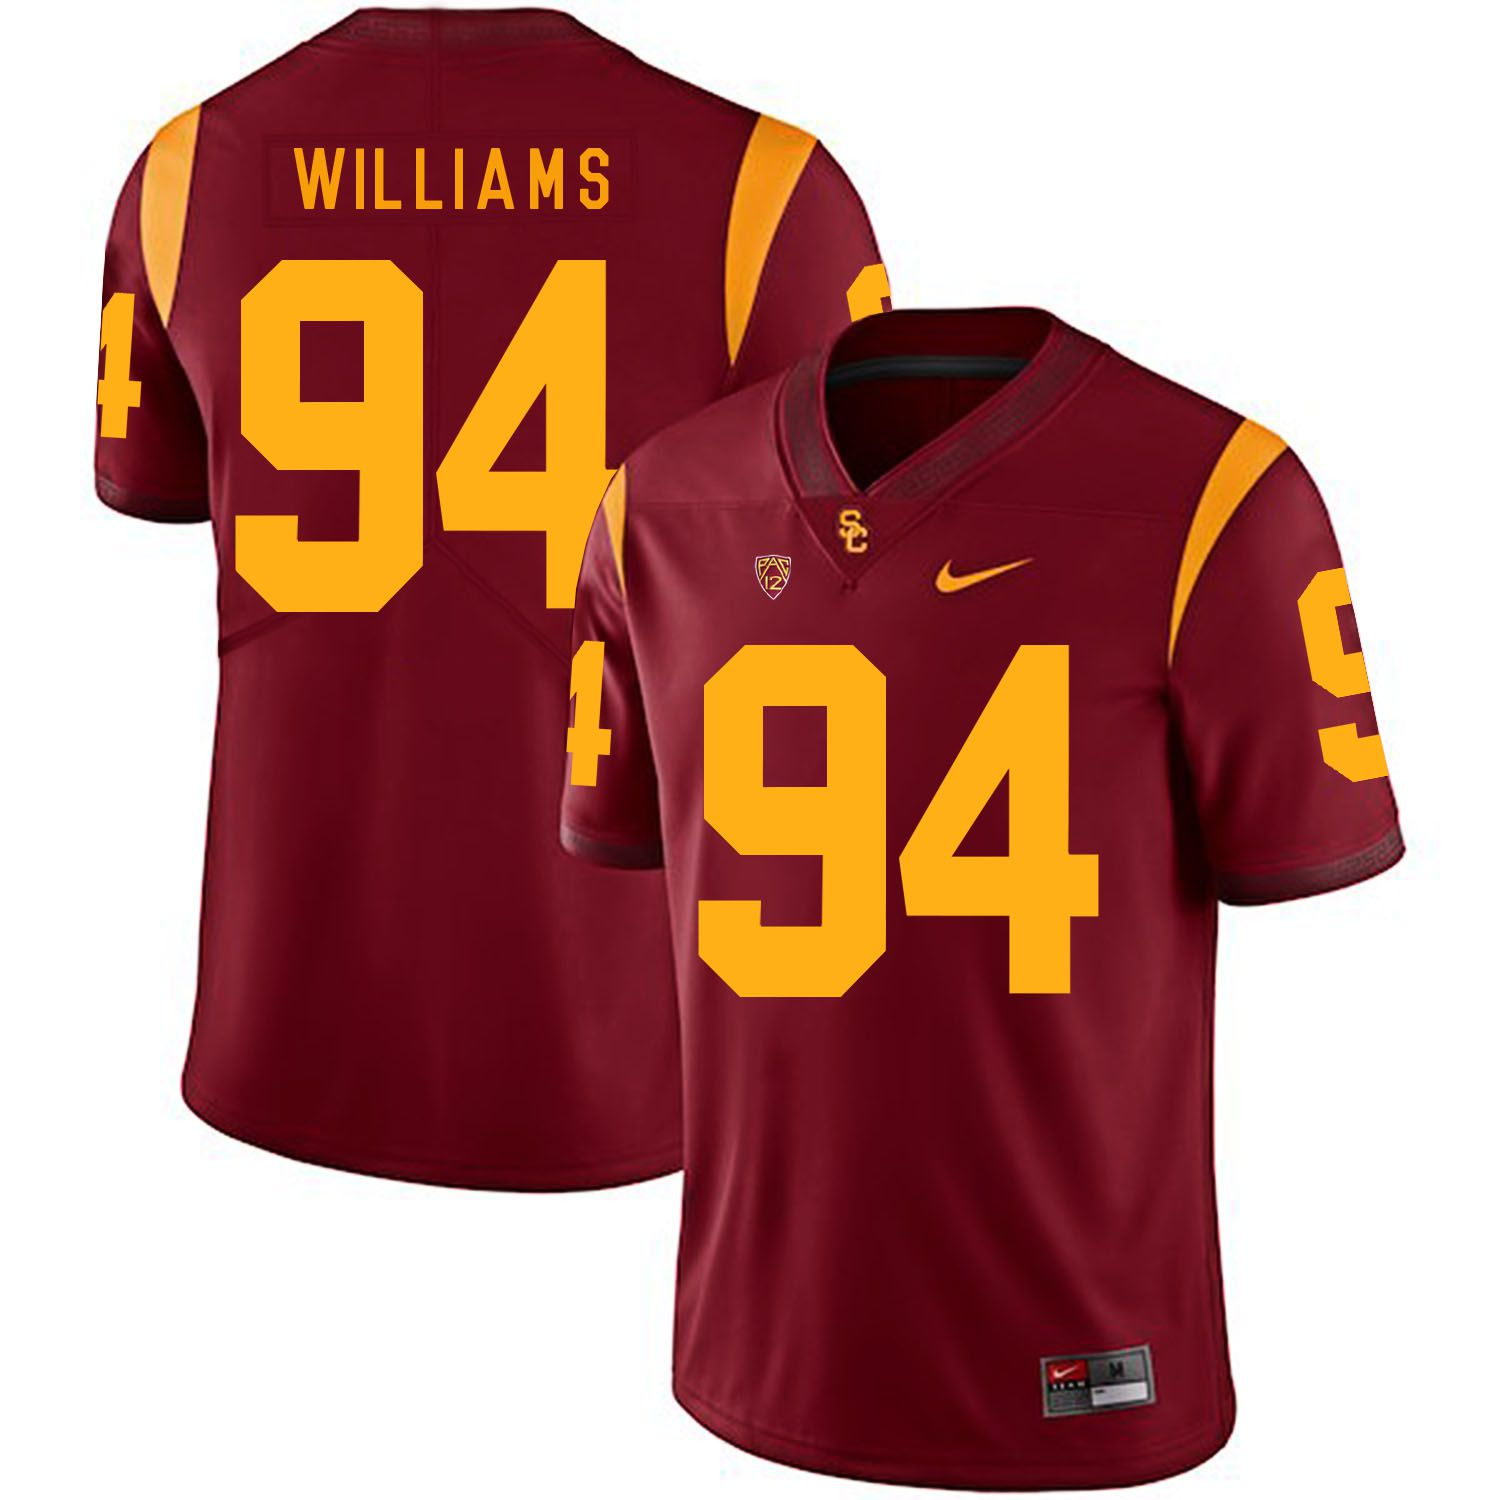 Men USC Trojans 94 Williams Red Customized NCAA Jerseys